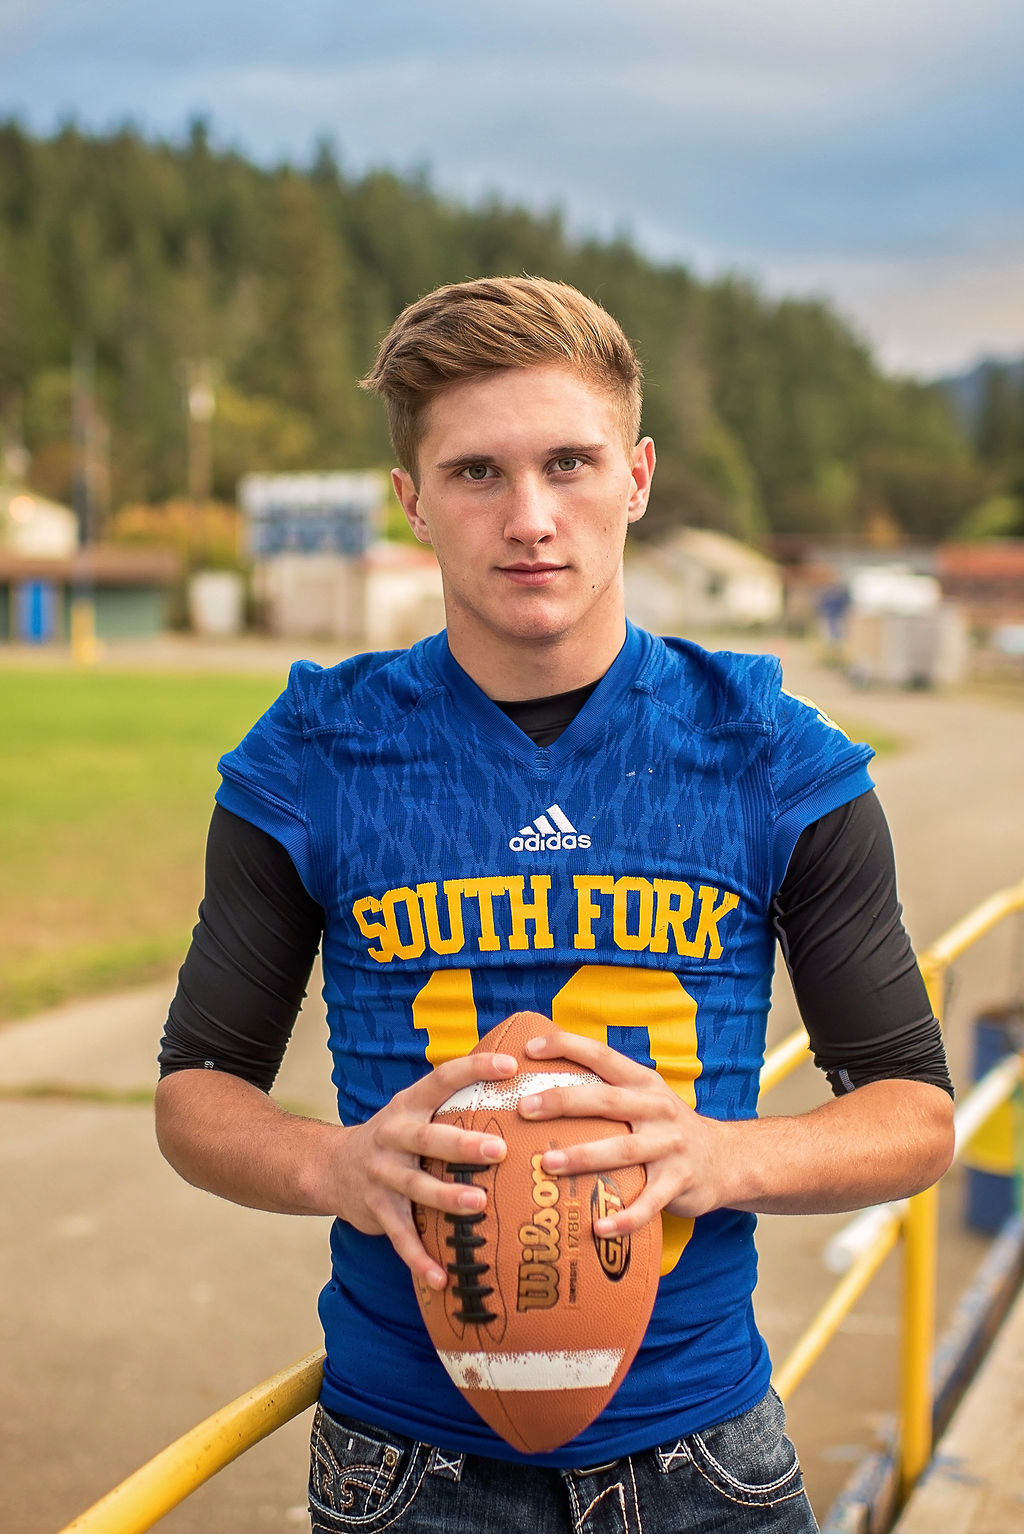 Redway-California-senior-portrait-photographer-Parky's-Pics-Photography-Humboldt-County-football-Souuth-Fork-High-1.jpg